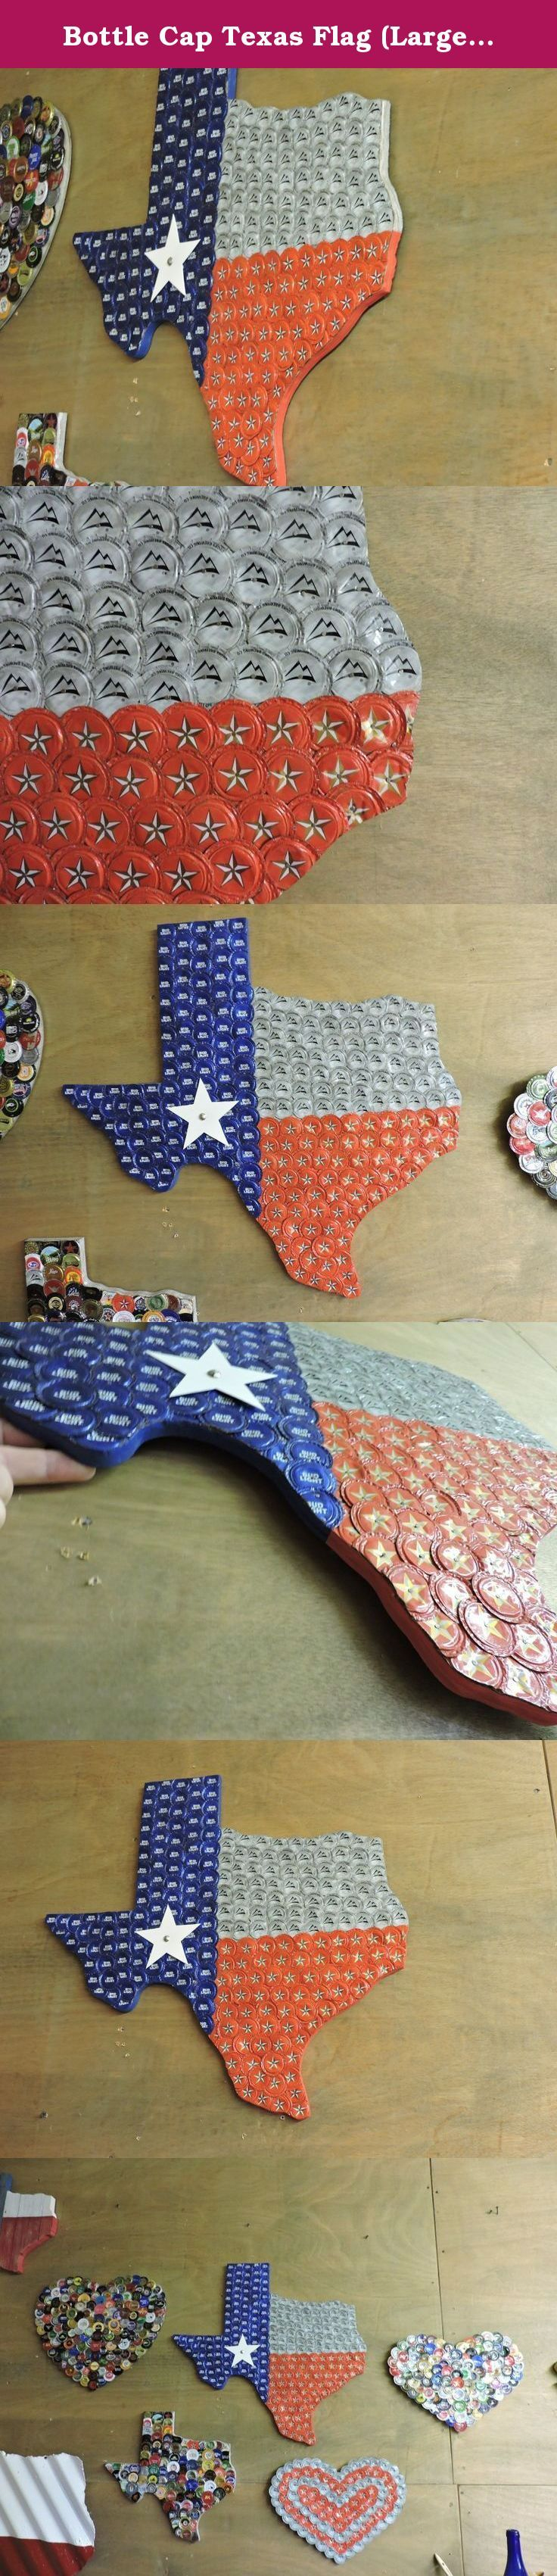 "Bottle Cap Texas Flag (Large) (#6) (Bud Lite, Coors, Lone Star beer caps). Bottle Cap Texas. Outline of Texas covered in bottle caps to look like the Texas Flag. Dimensions are approximately 23 1/2"" by 23"" -- longest point to longest point (El Paso to Gulf; Panhandle to Brownsville). Caps are flattened and then nailed to 1/2"" plywood. They overlap so you only see bottle caps, no wood. The edge of the plywood is painted to match corresponding color in the flag. Star is made from metal…"